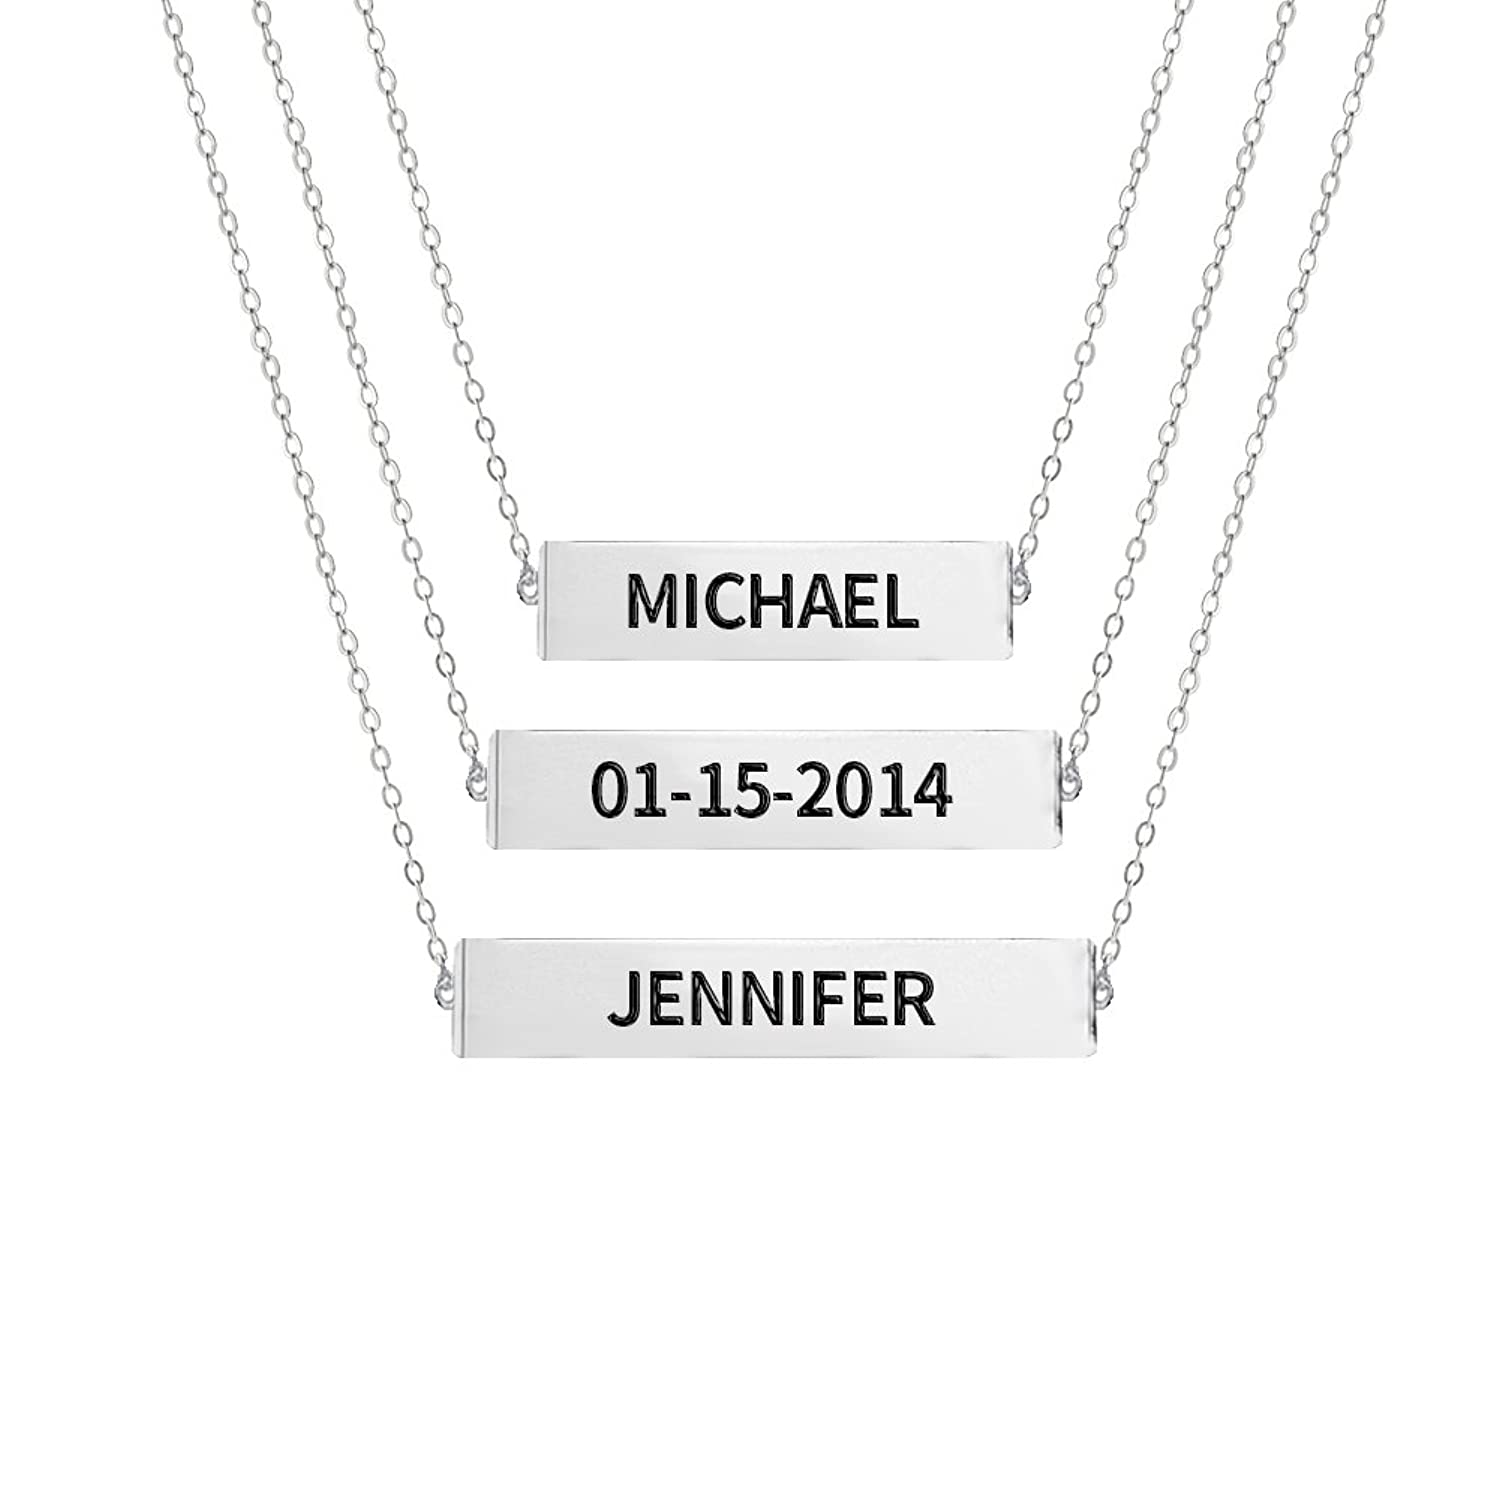 Ouslier 925 Sterling Silver Personalized Layered Bar Necklace Custom Made with 3 Names